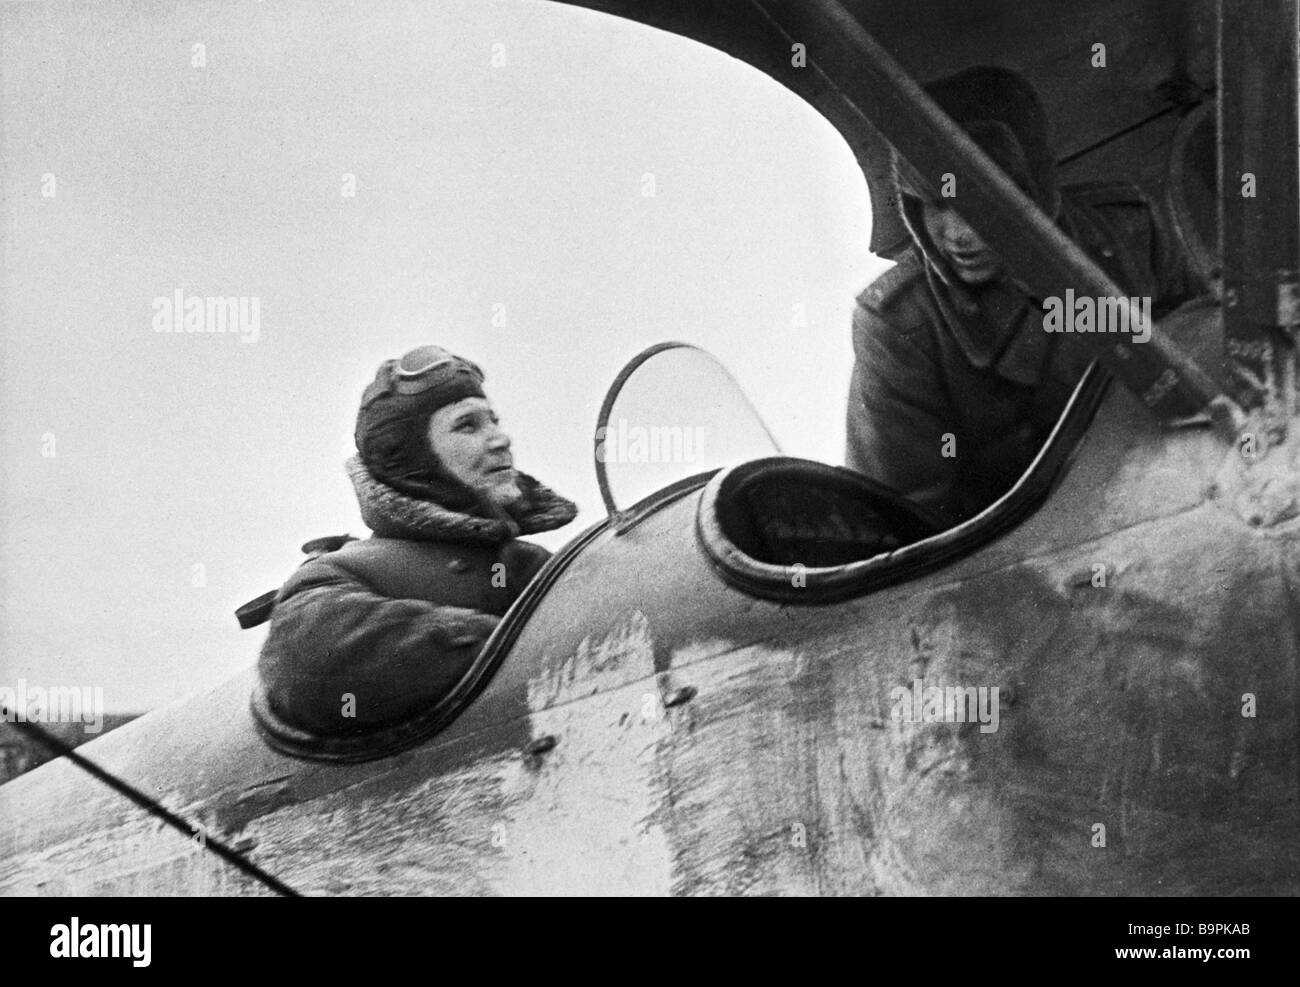 Commander of the 2nd Ukrainian Front Marshal of the Soviet Union I Konev flying to the front line - Stock Image